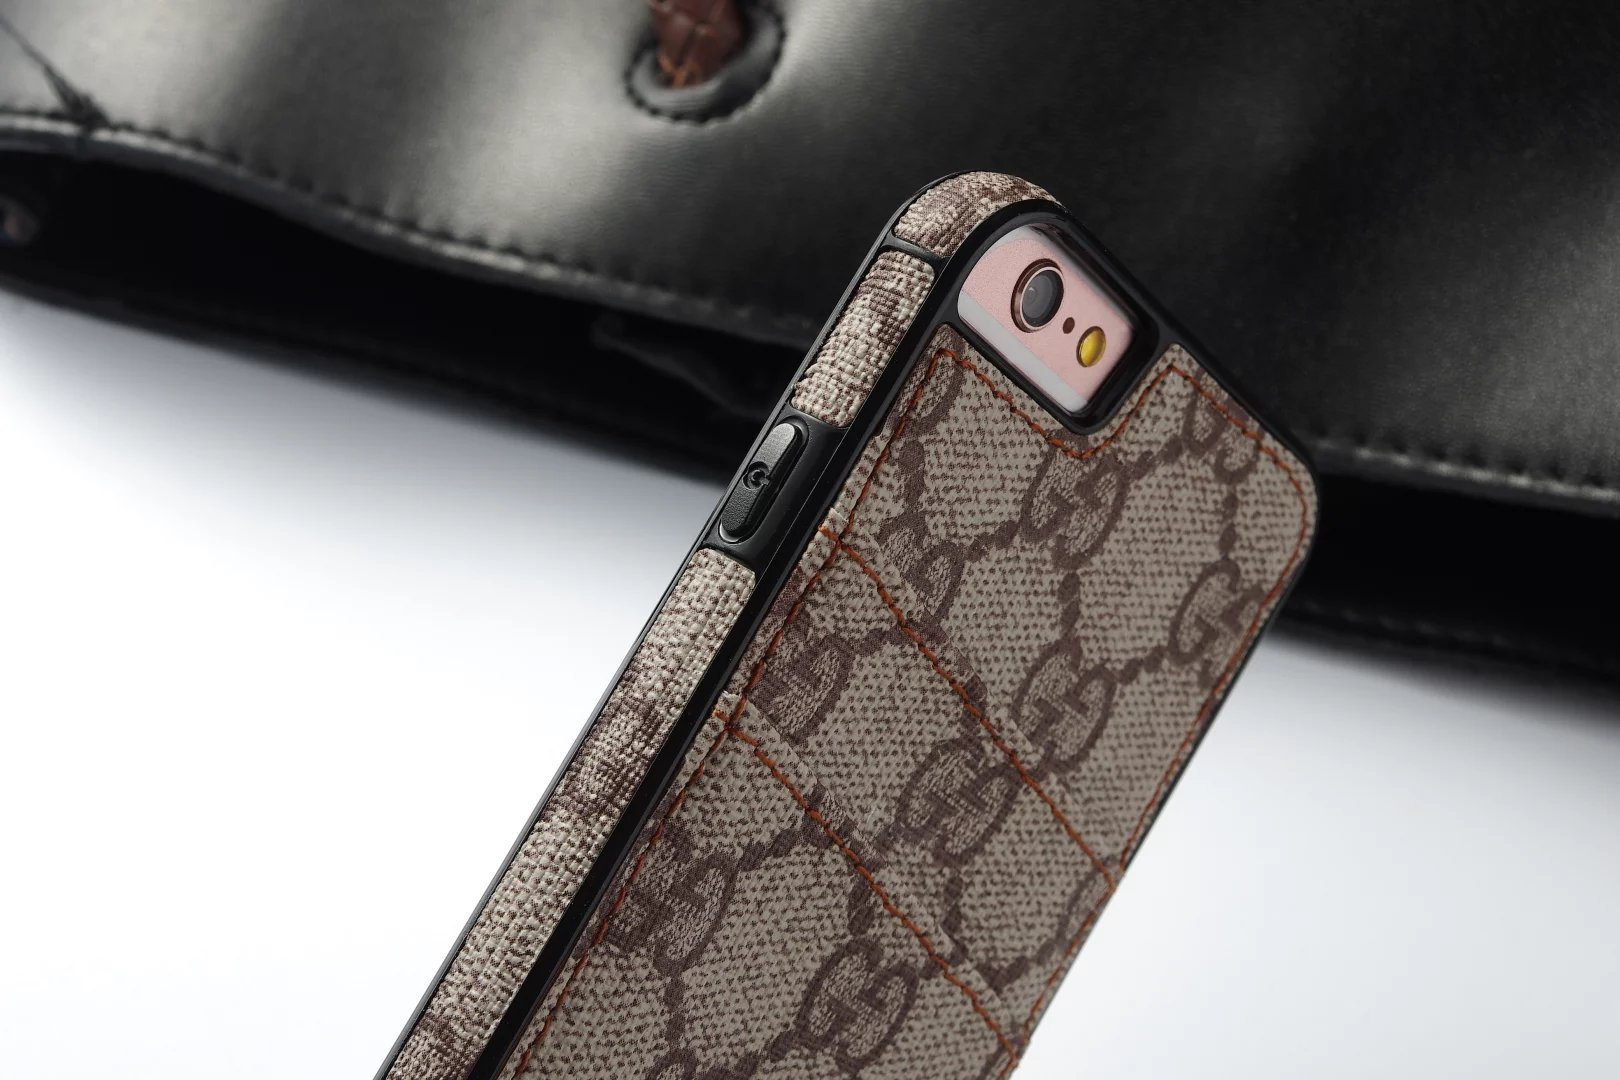 iphone handyhülle selbst gestalten iphone handyhülle mit foto Louis Vuitton iphone7 hülle iphone cover gestalten apple hülle 7 iphone cover drucken iphone 1 hülle handy ca7 7lber machen iphone 3 6